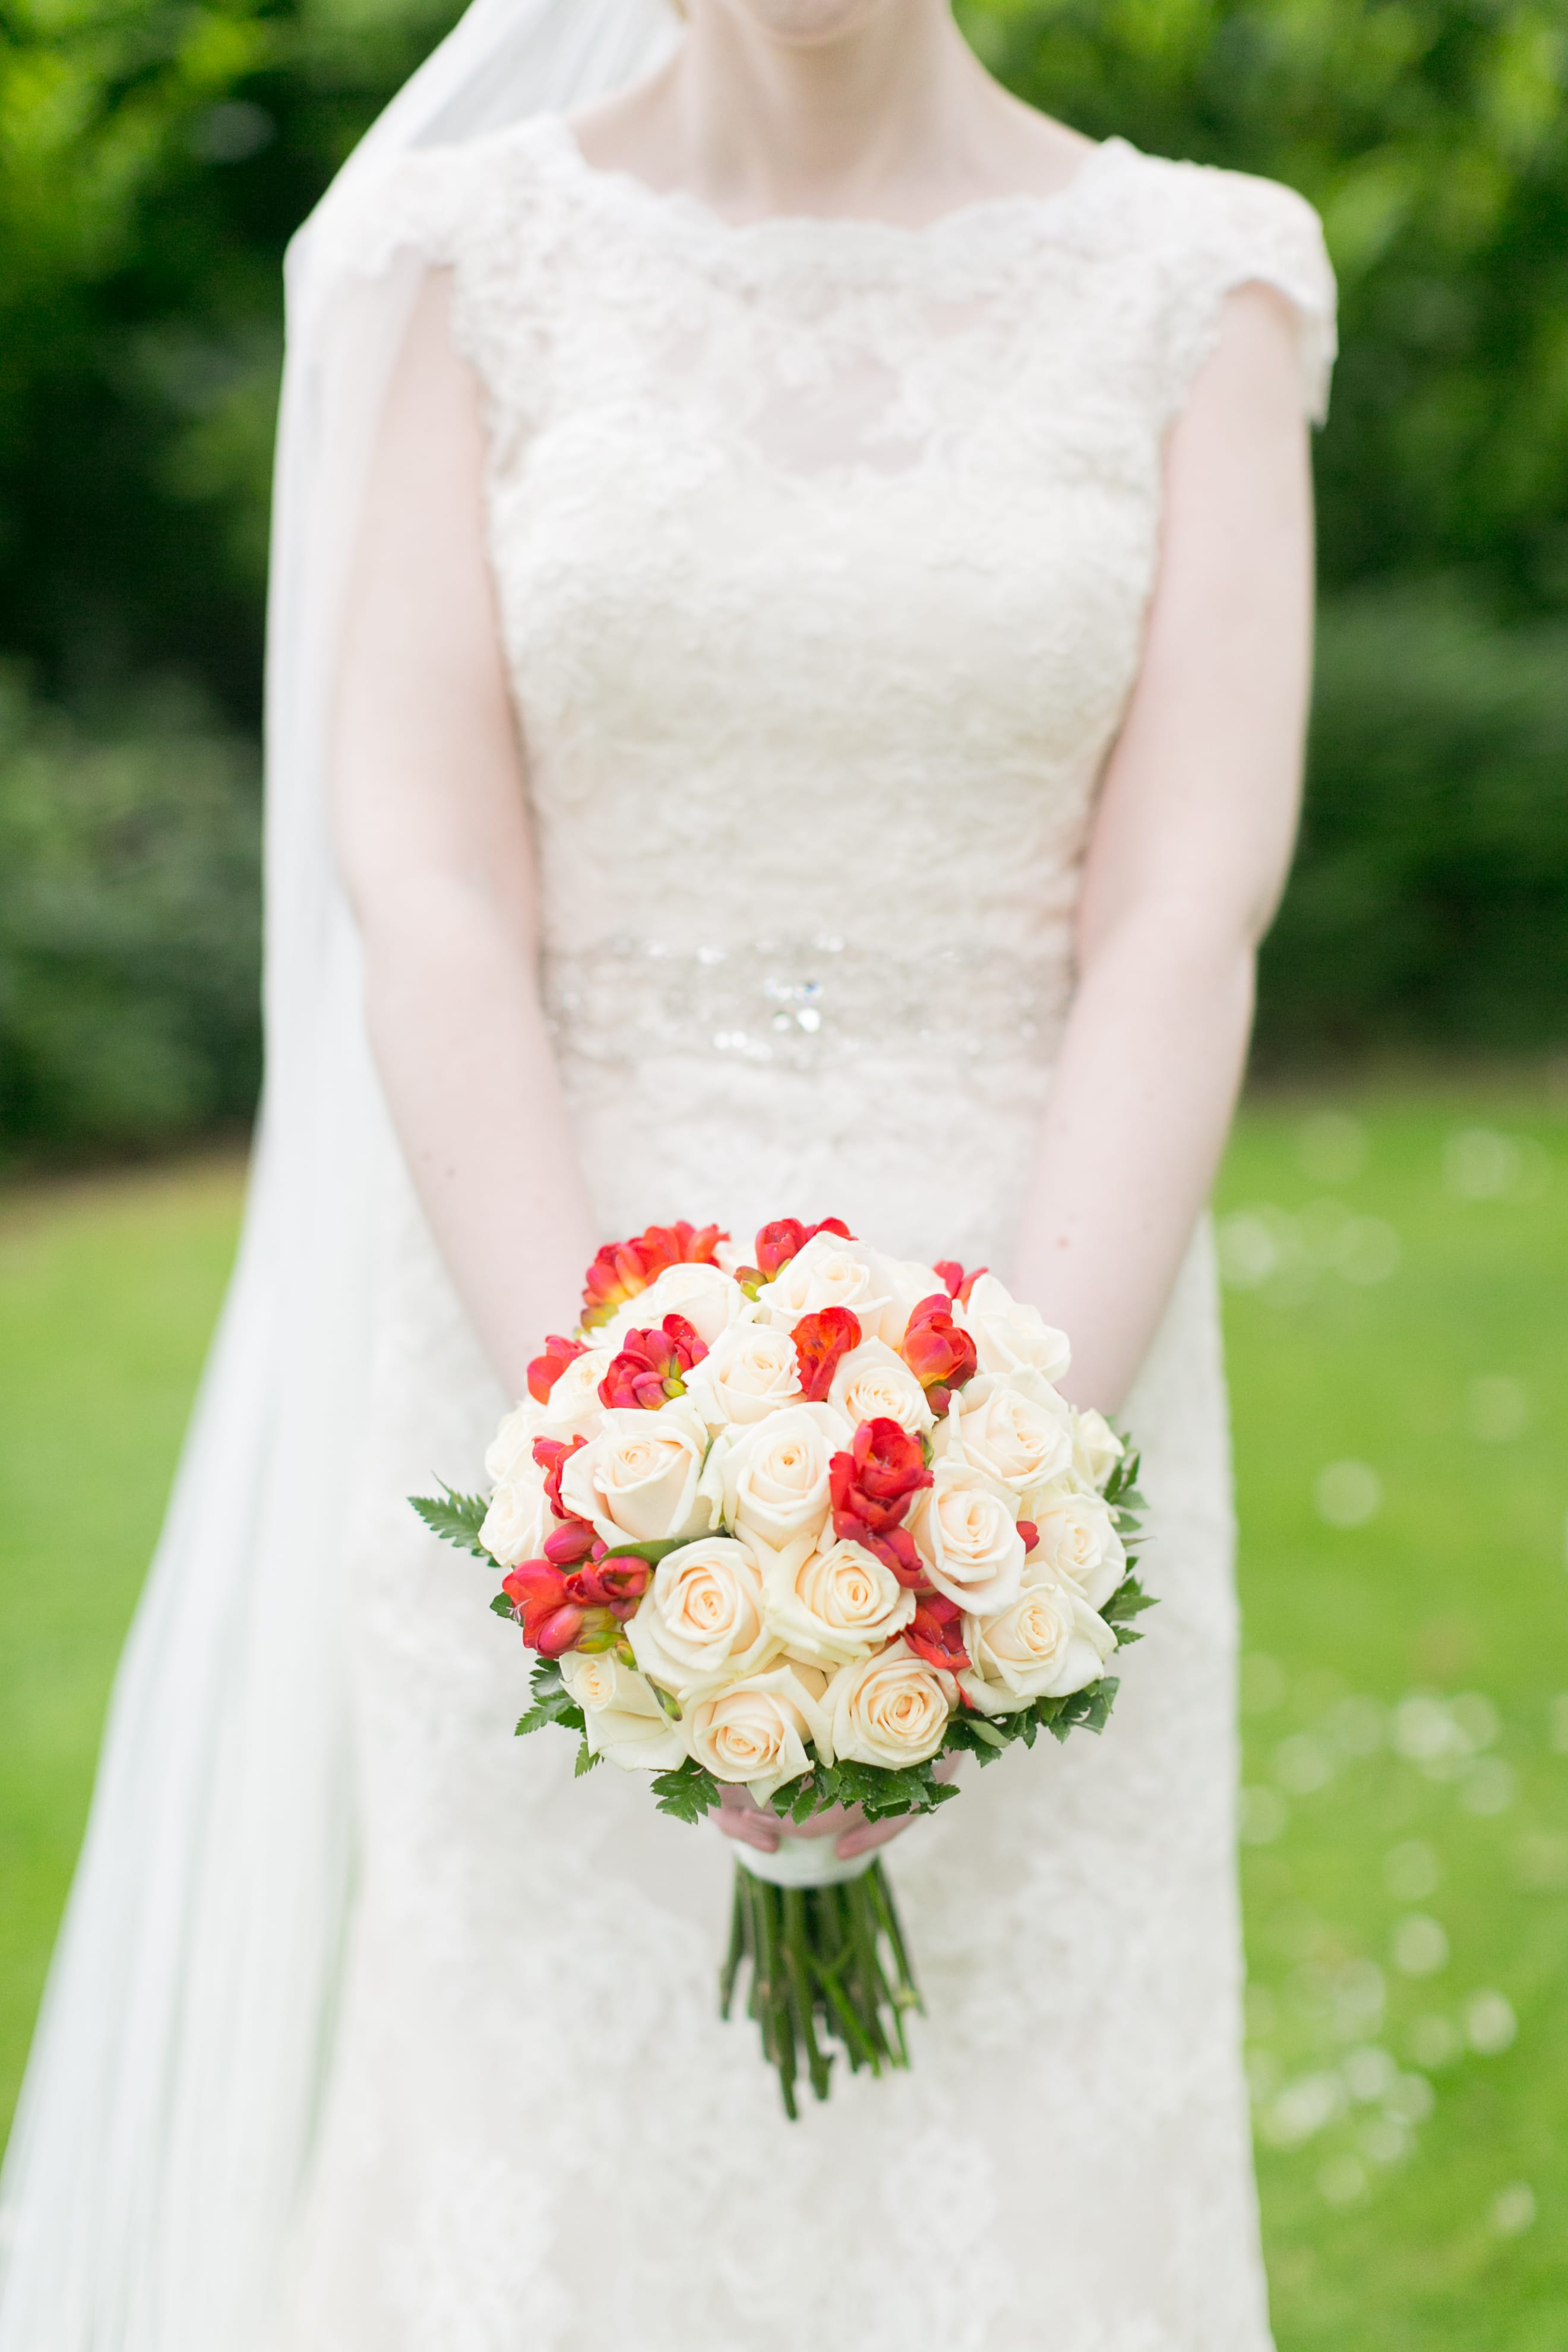 Wedding Dress Tailor Near Me Dress Alterations Near Me Related